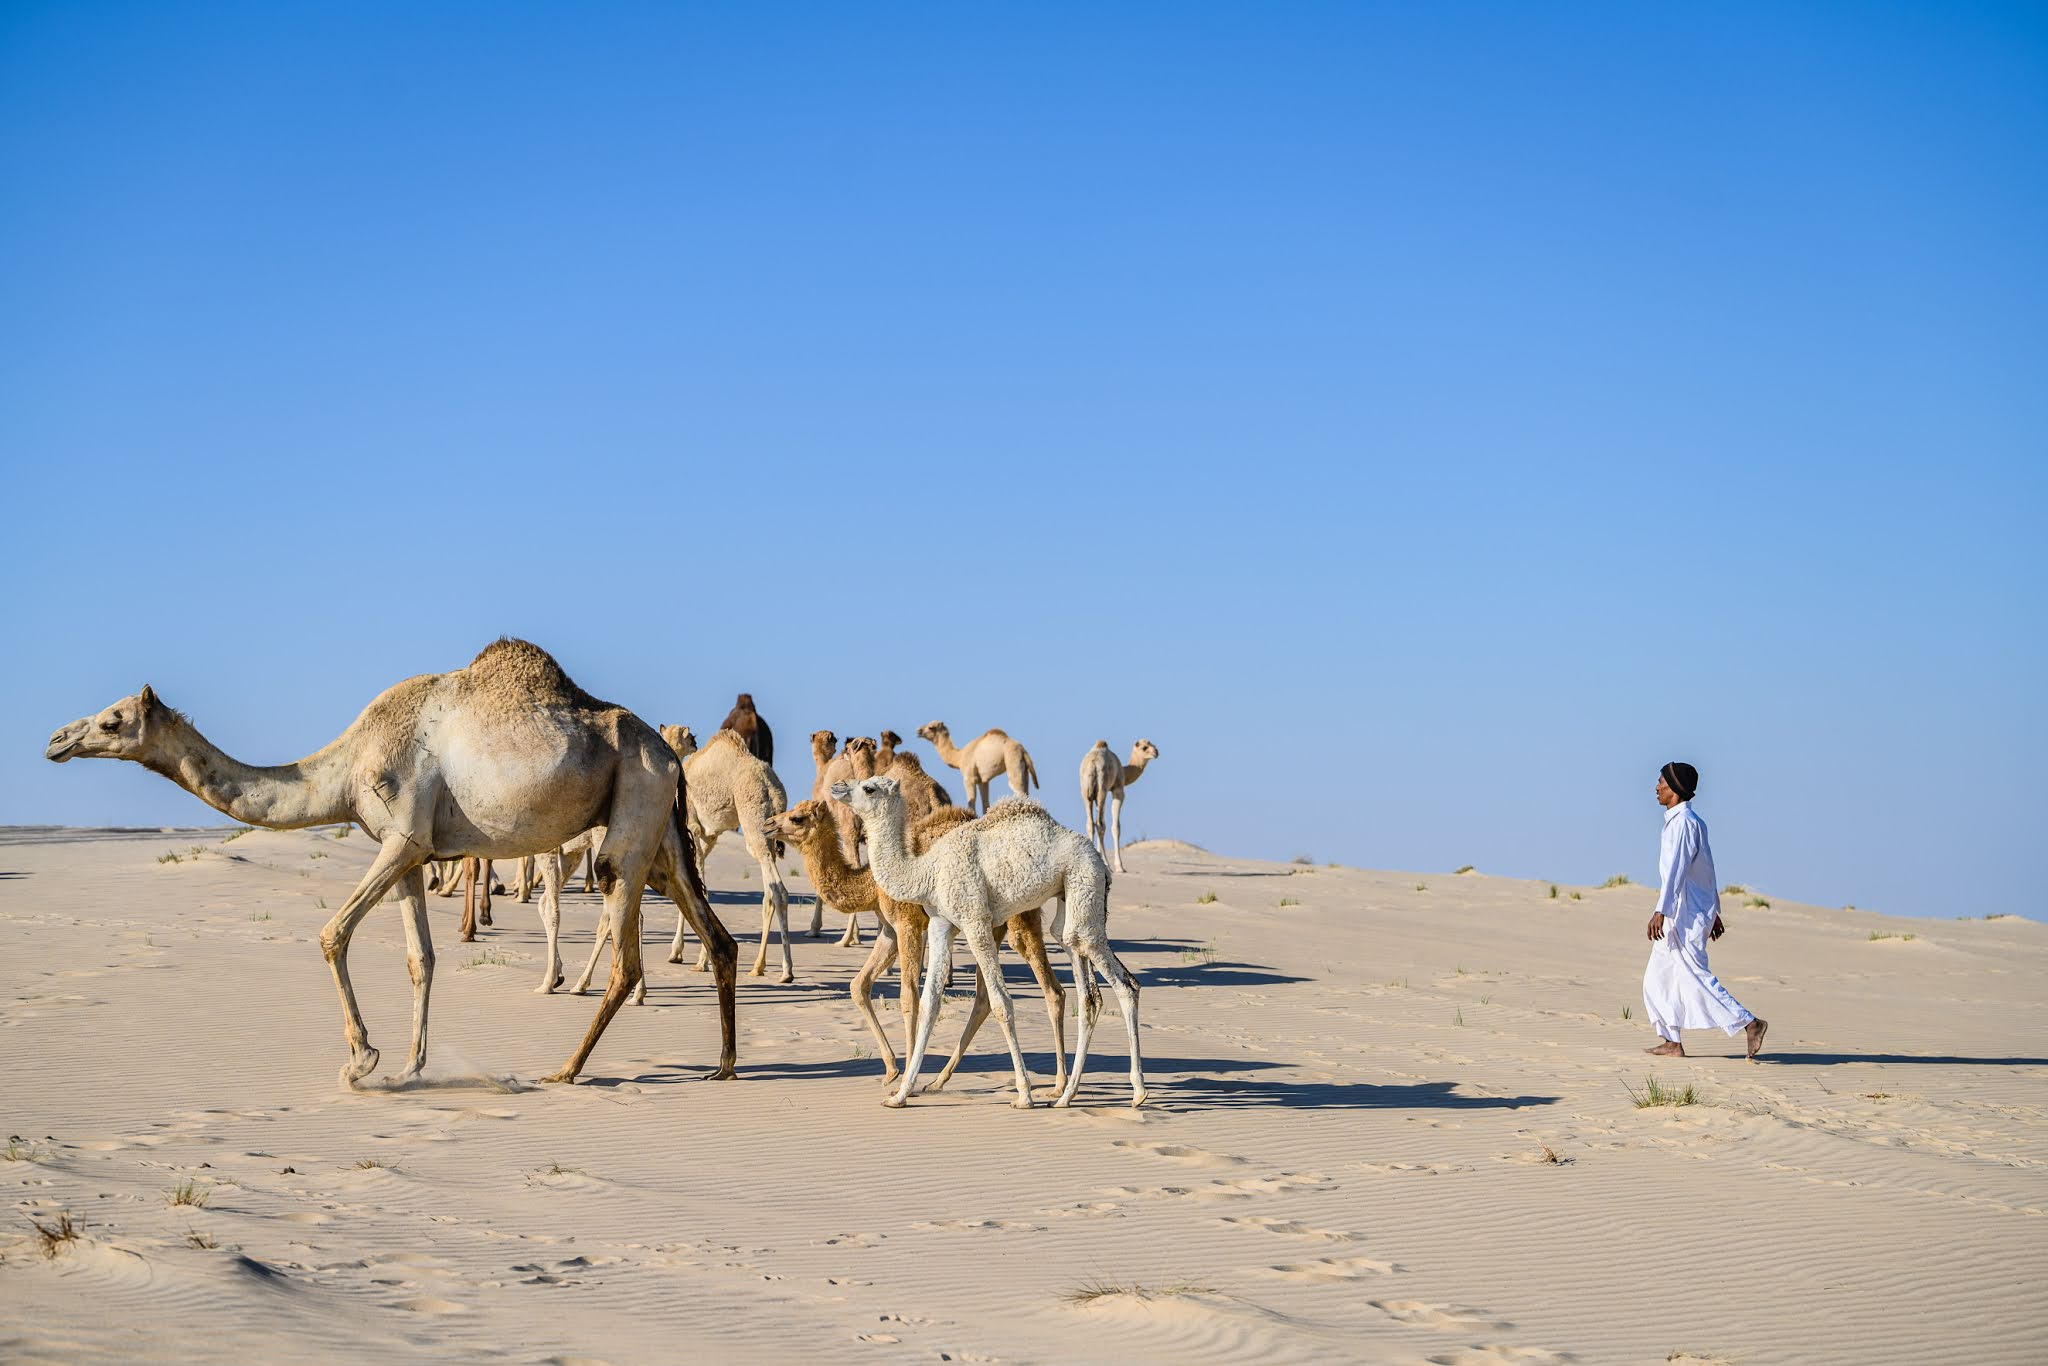 QNTC issues photos of cute arrivals in the country - camel calves